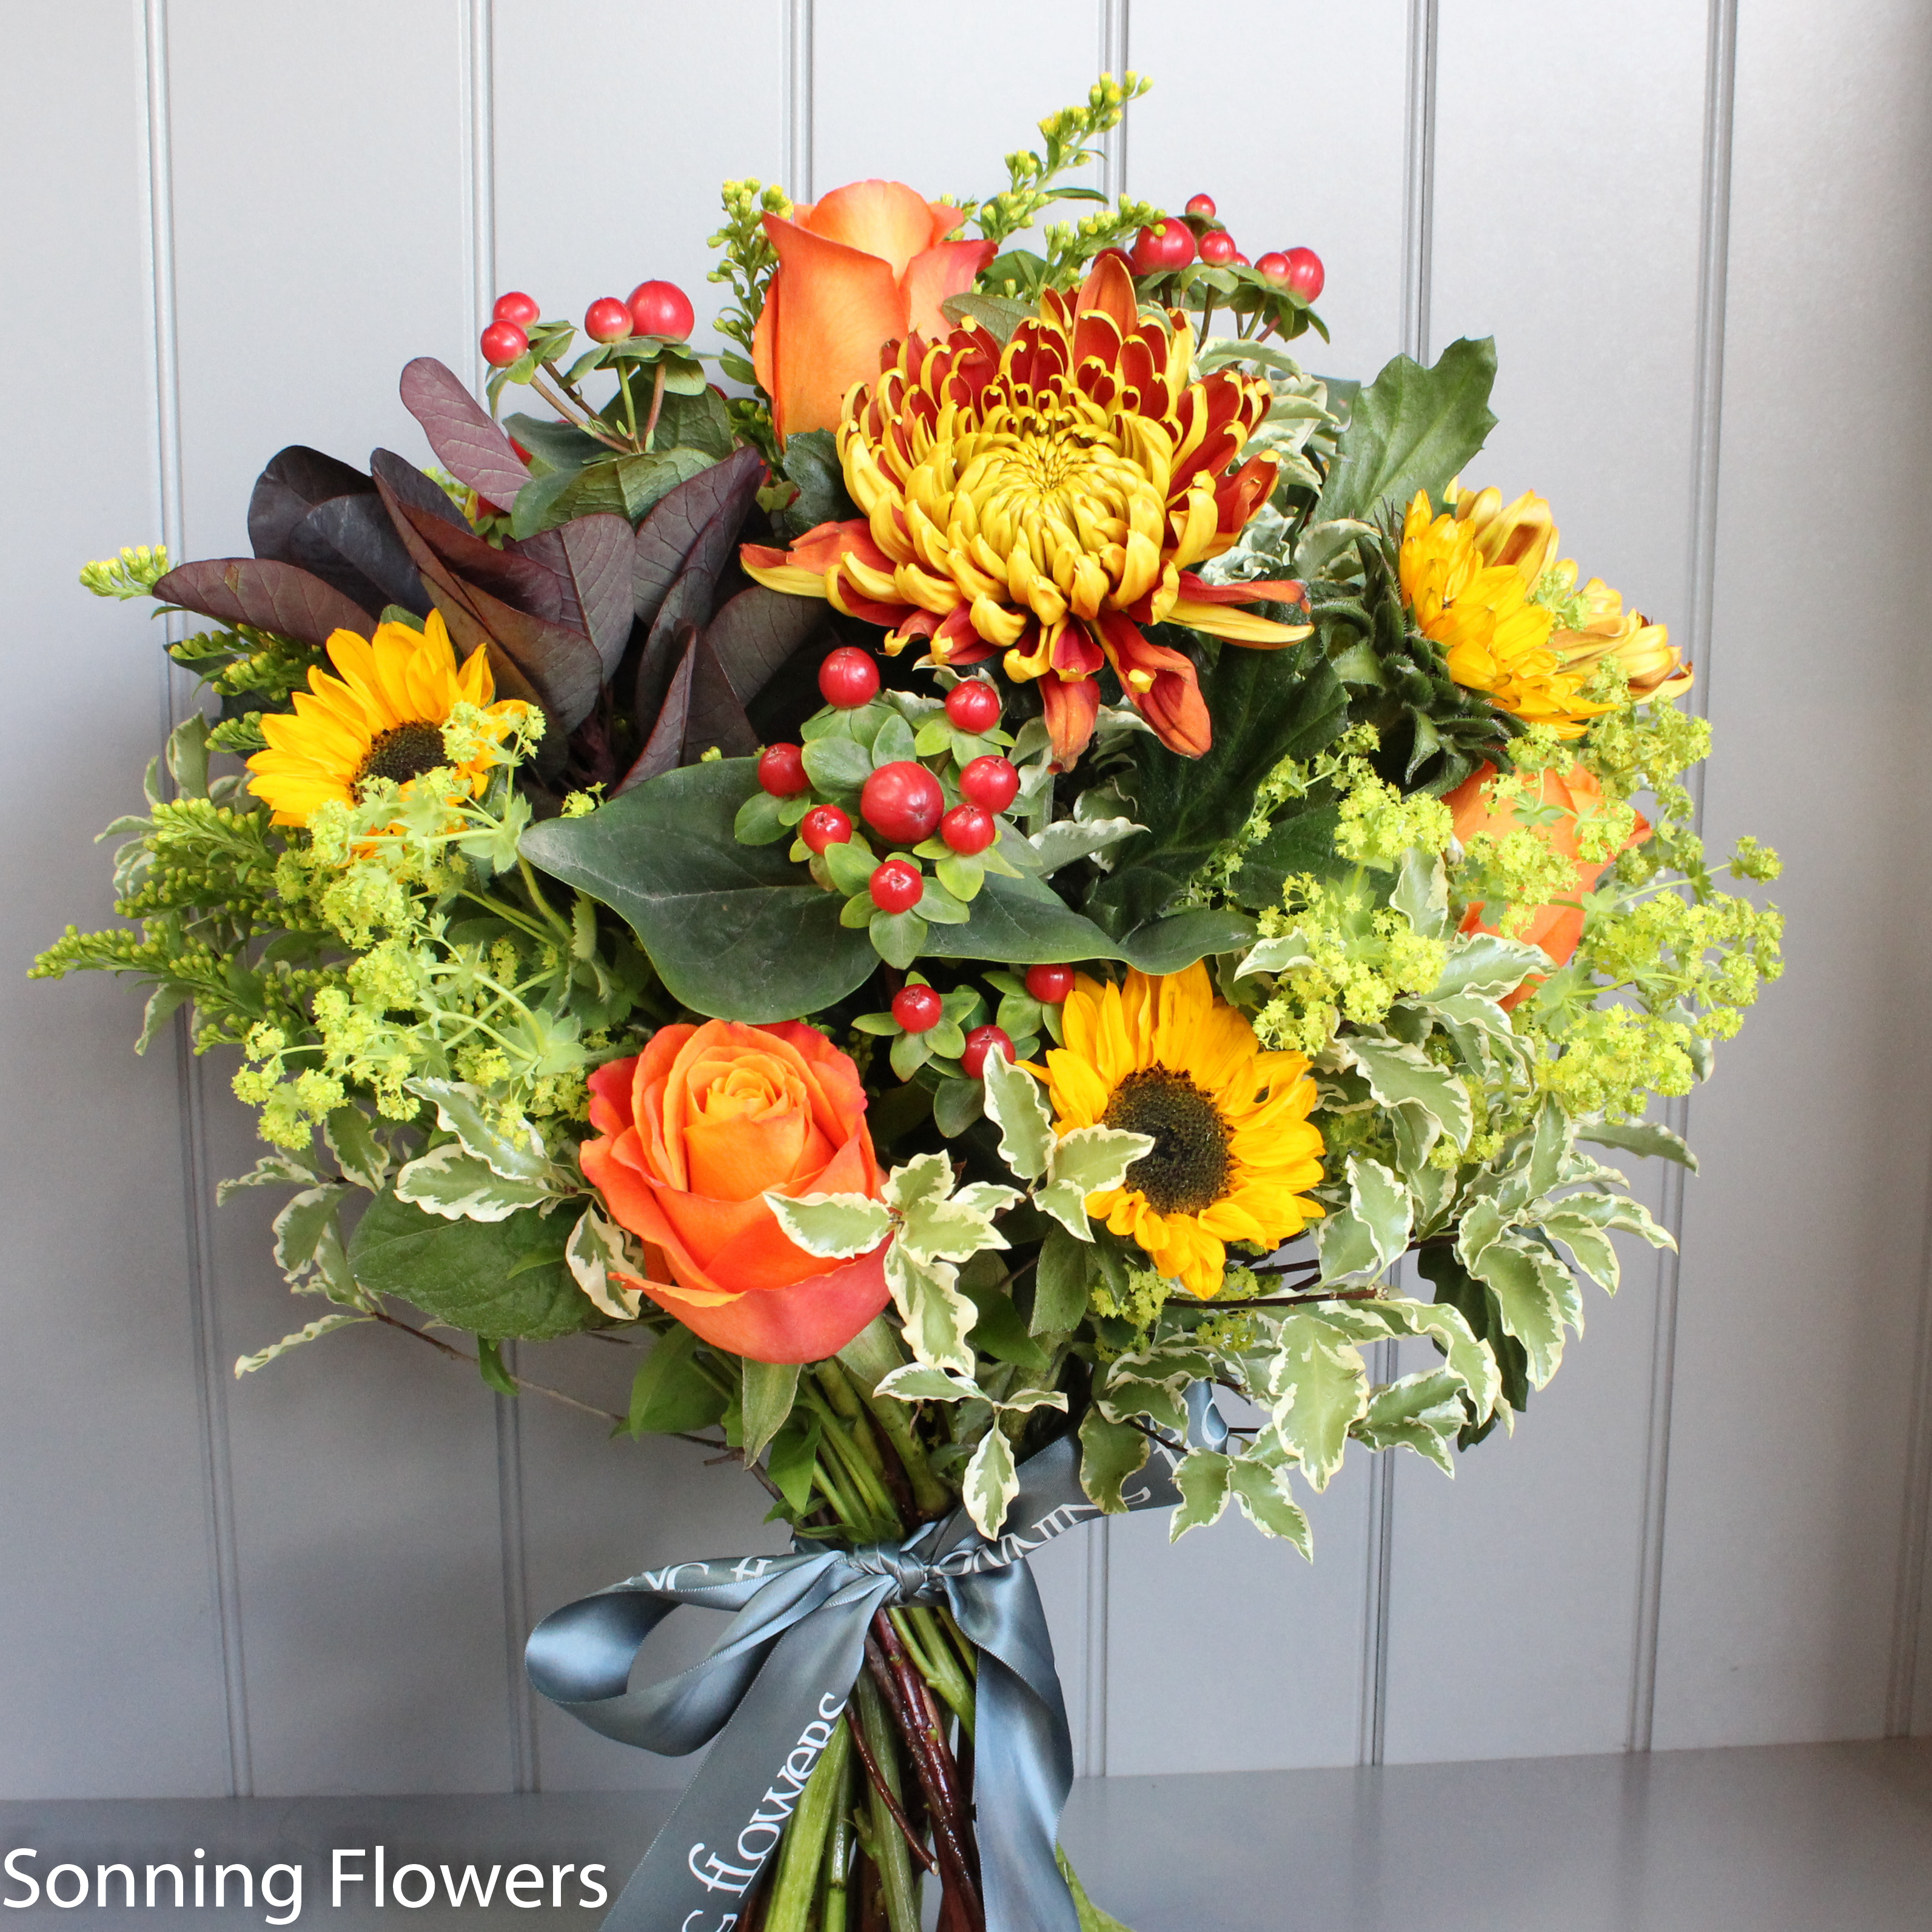 Autumn flower bouquet